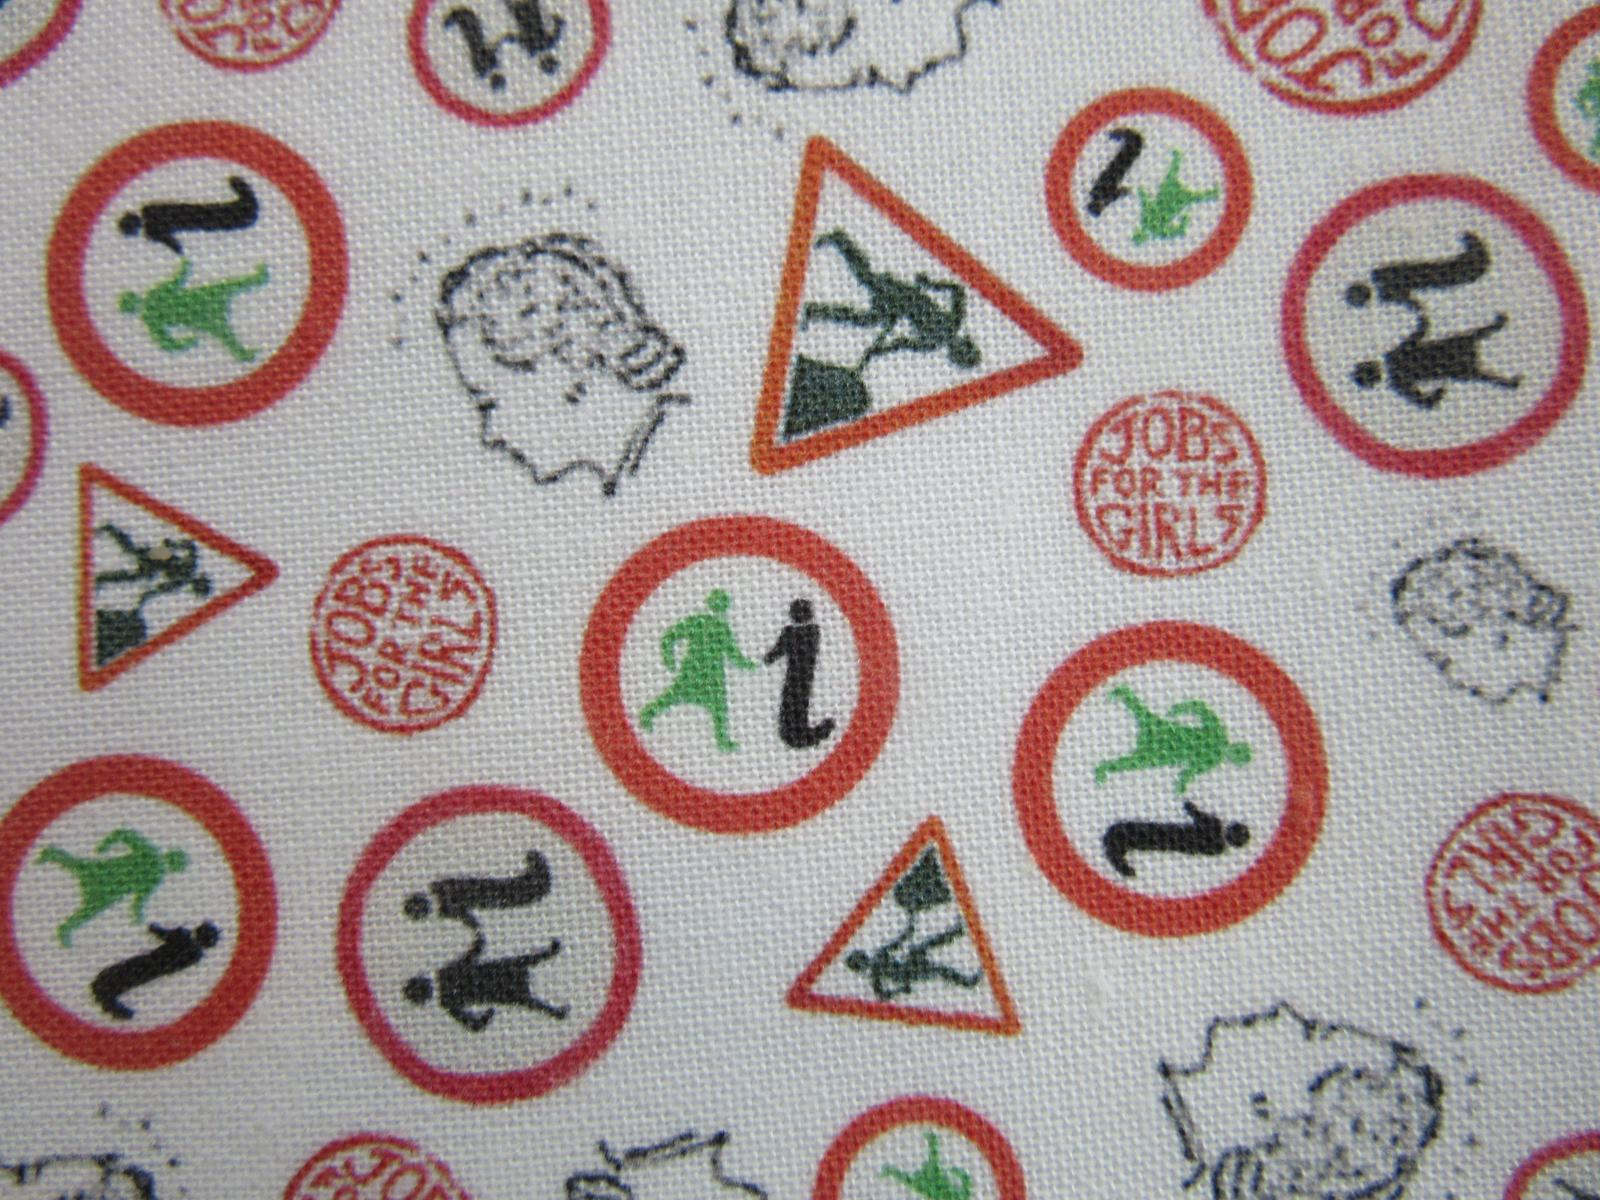 Patterned fabric design for our GWL facemasks, with different logos from GWL history in red, green and black on a white background.